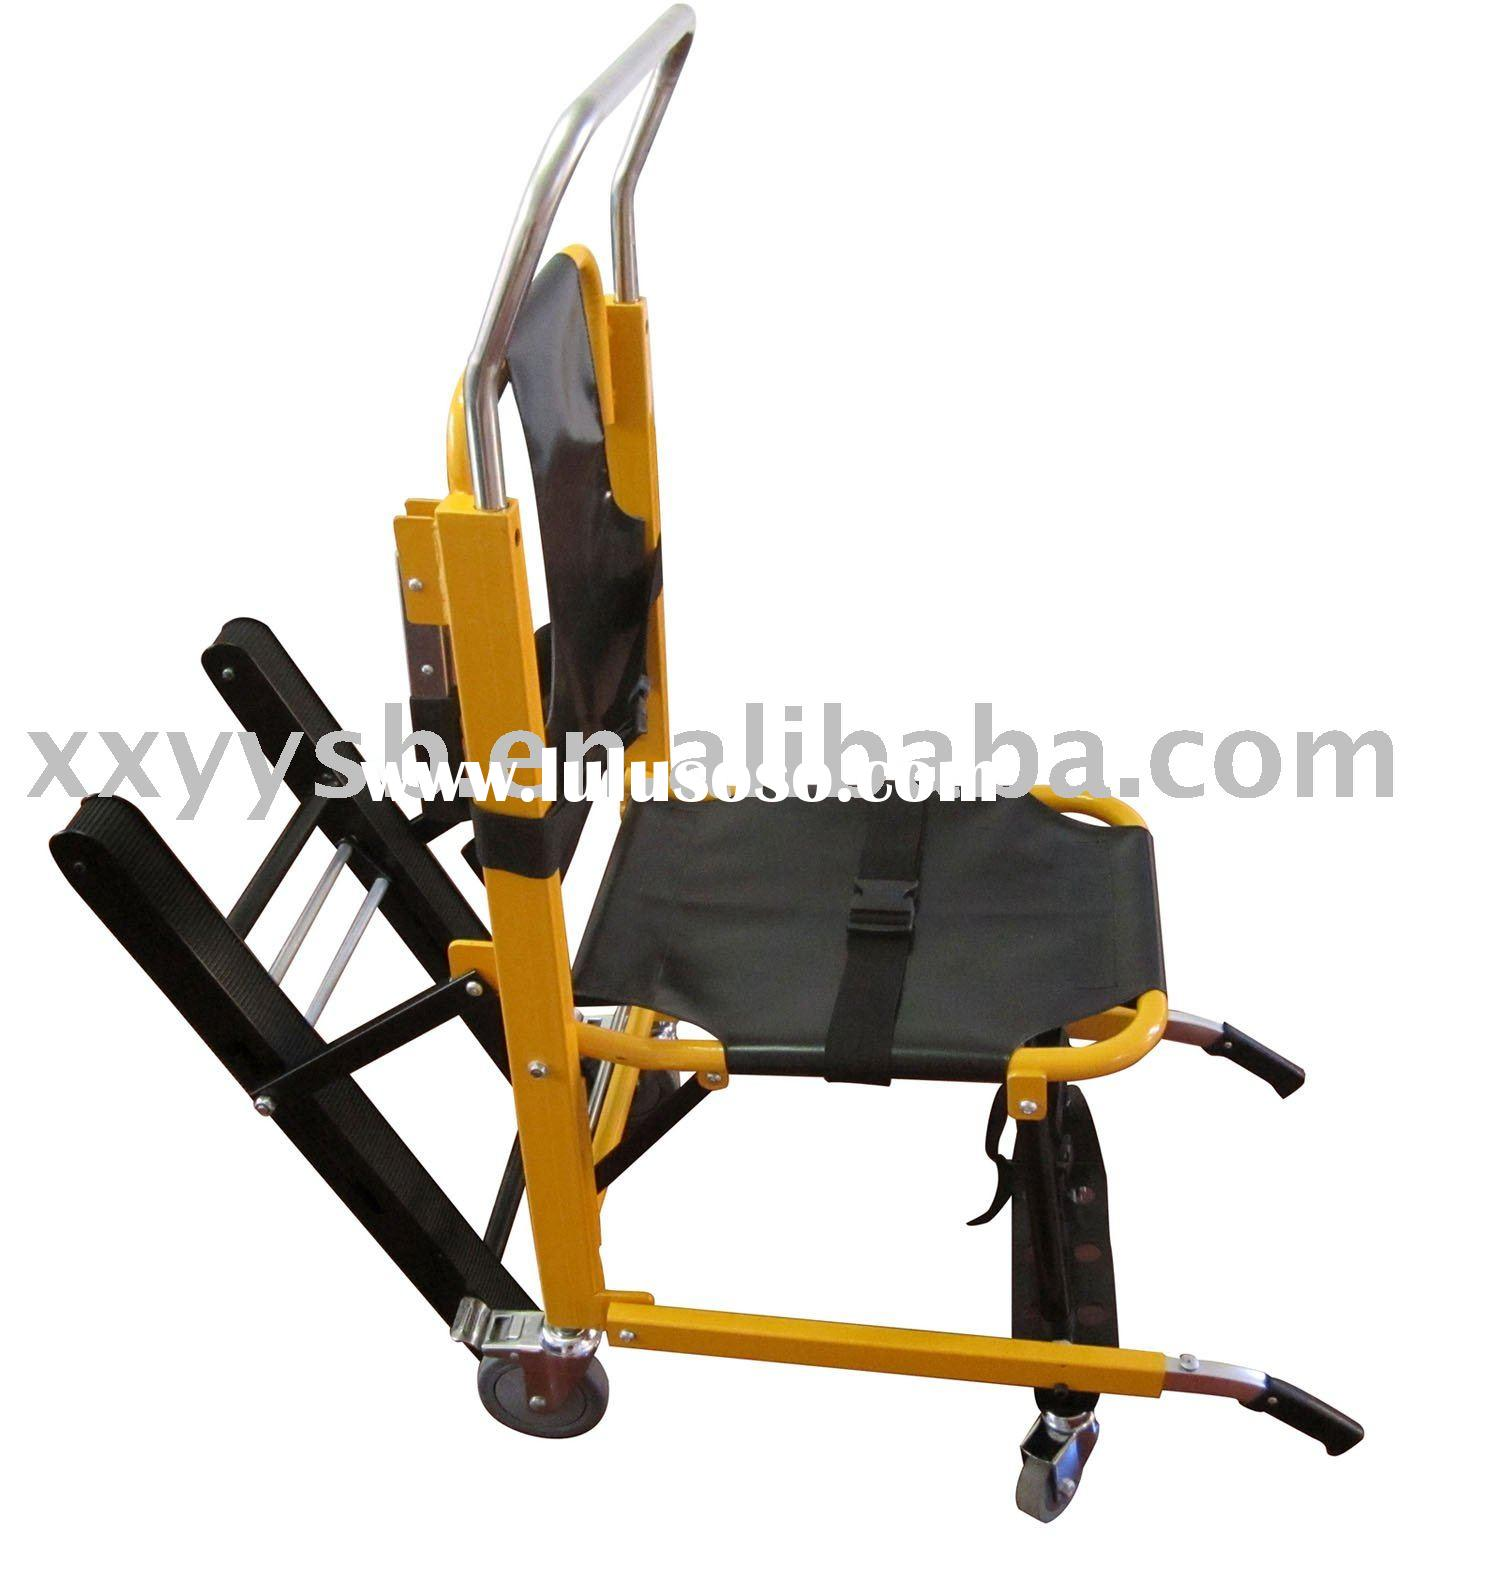 Medical Equipment For Sale Price China Manufacturer